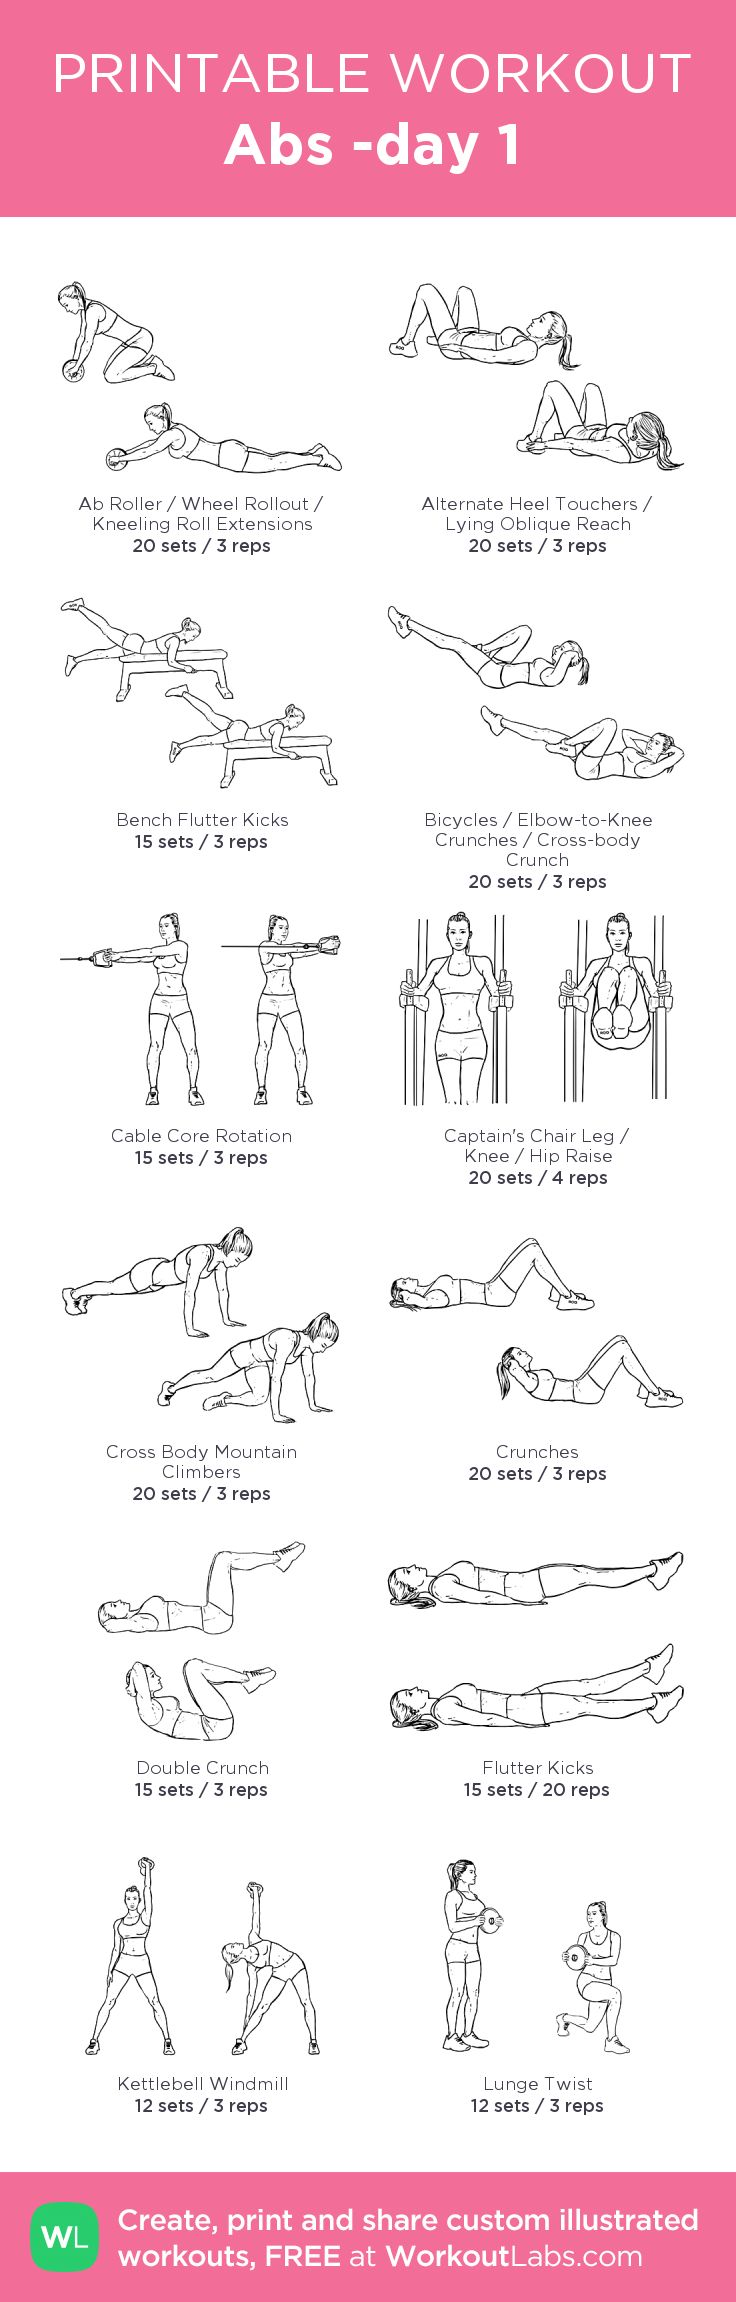 Abs -day 1: my visual workout created at WorkoutLabs.com • Click through to customize and download as a FREE PDF! #customworkout